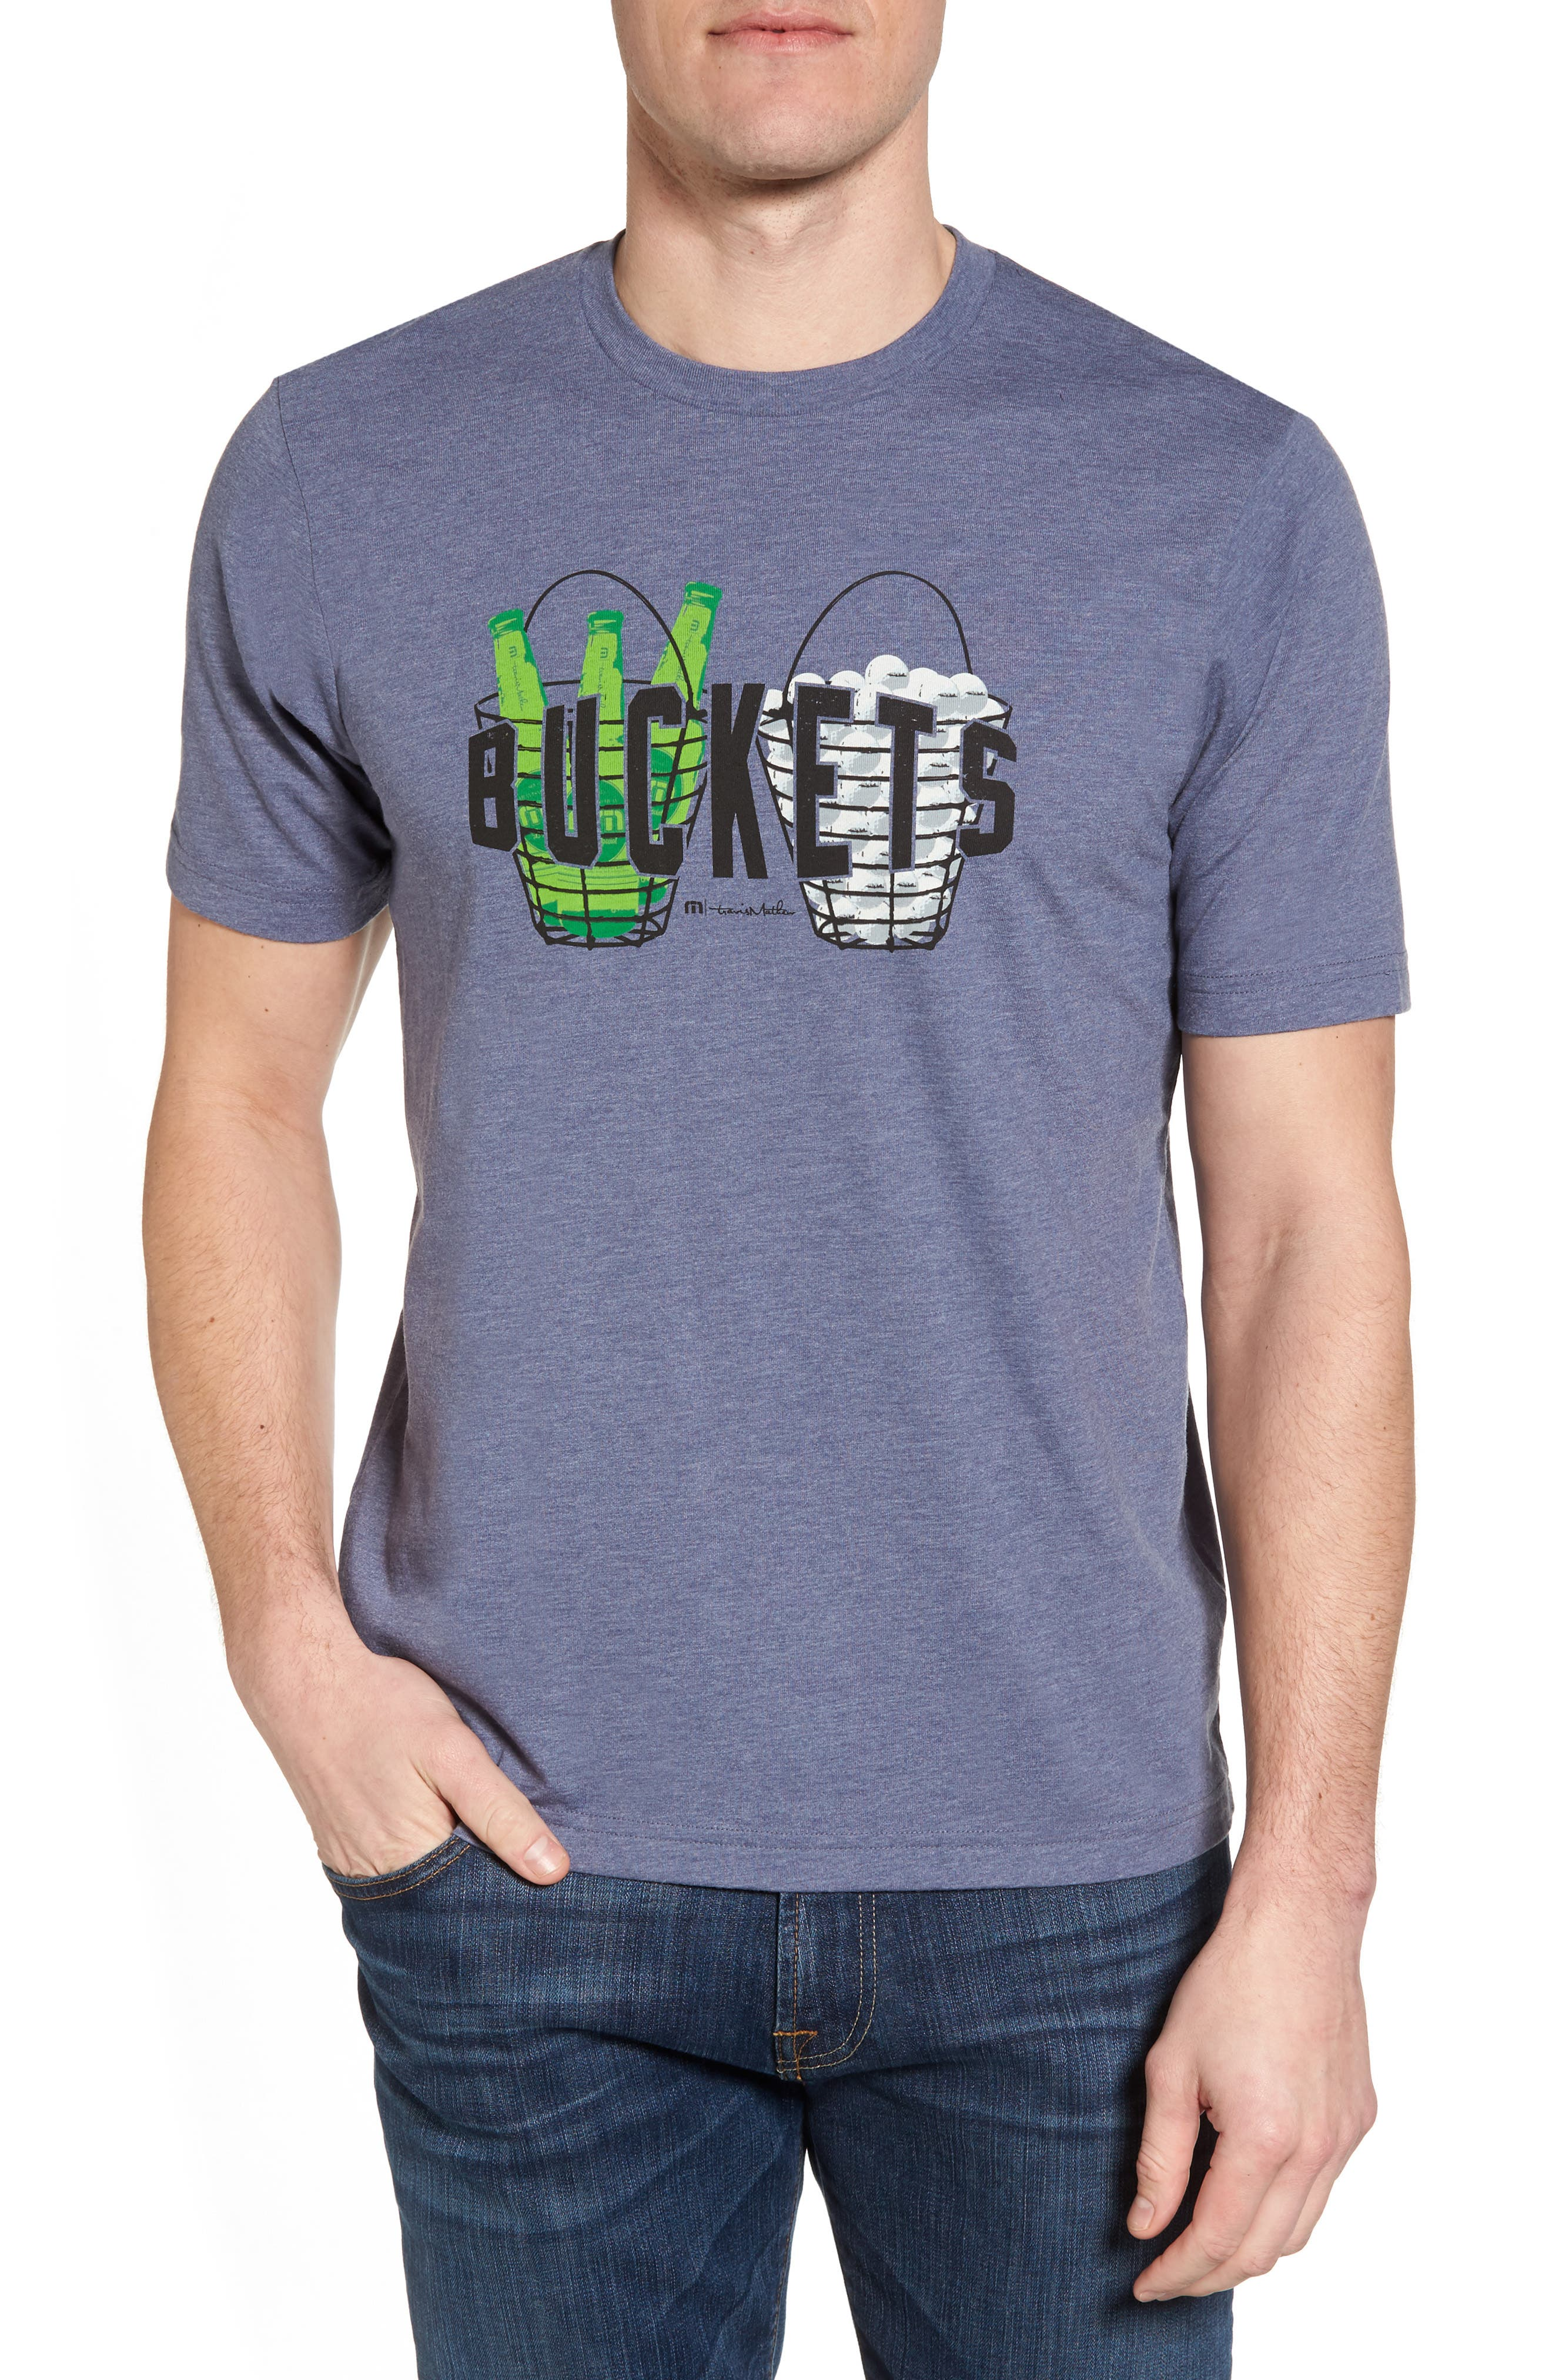 Alternate Image 1 Selected - Travis Mathew 'Buckets' Graphic T-Shirt